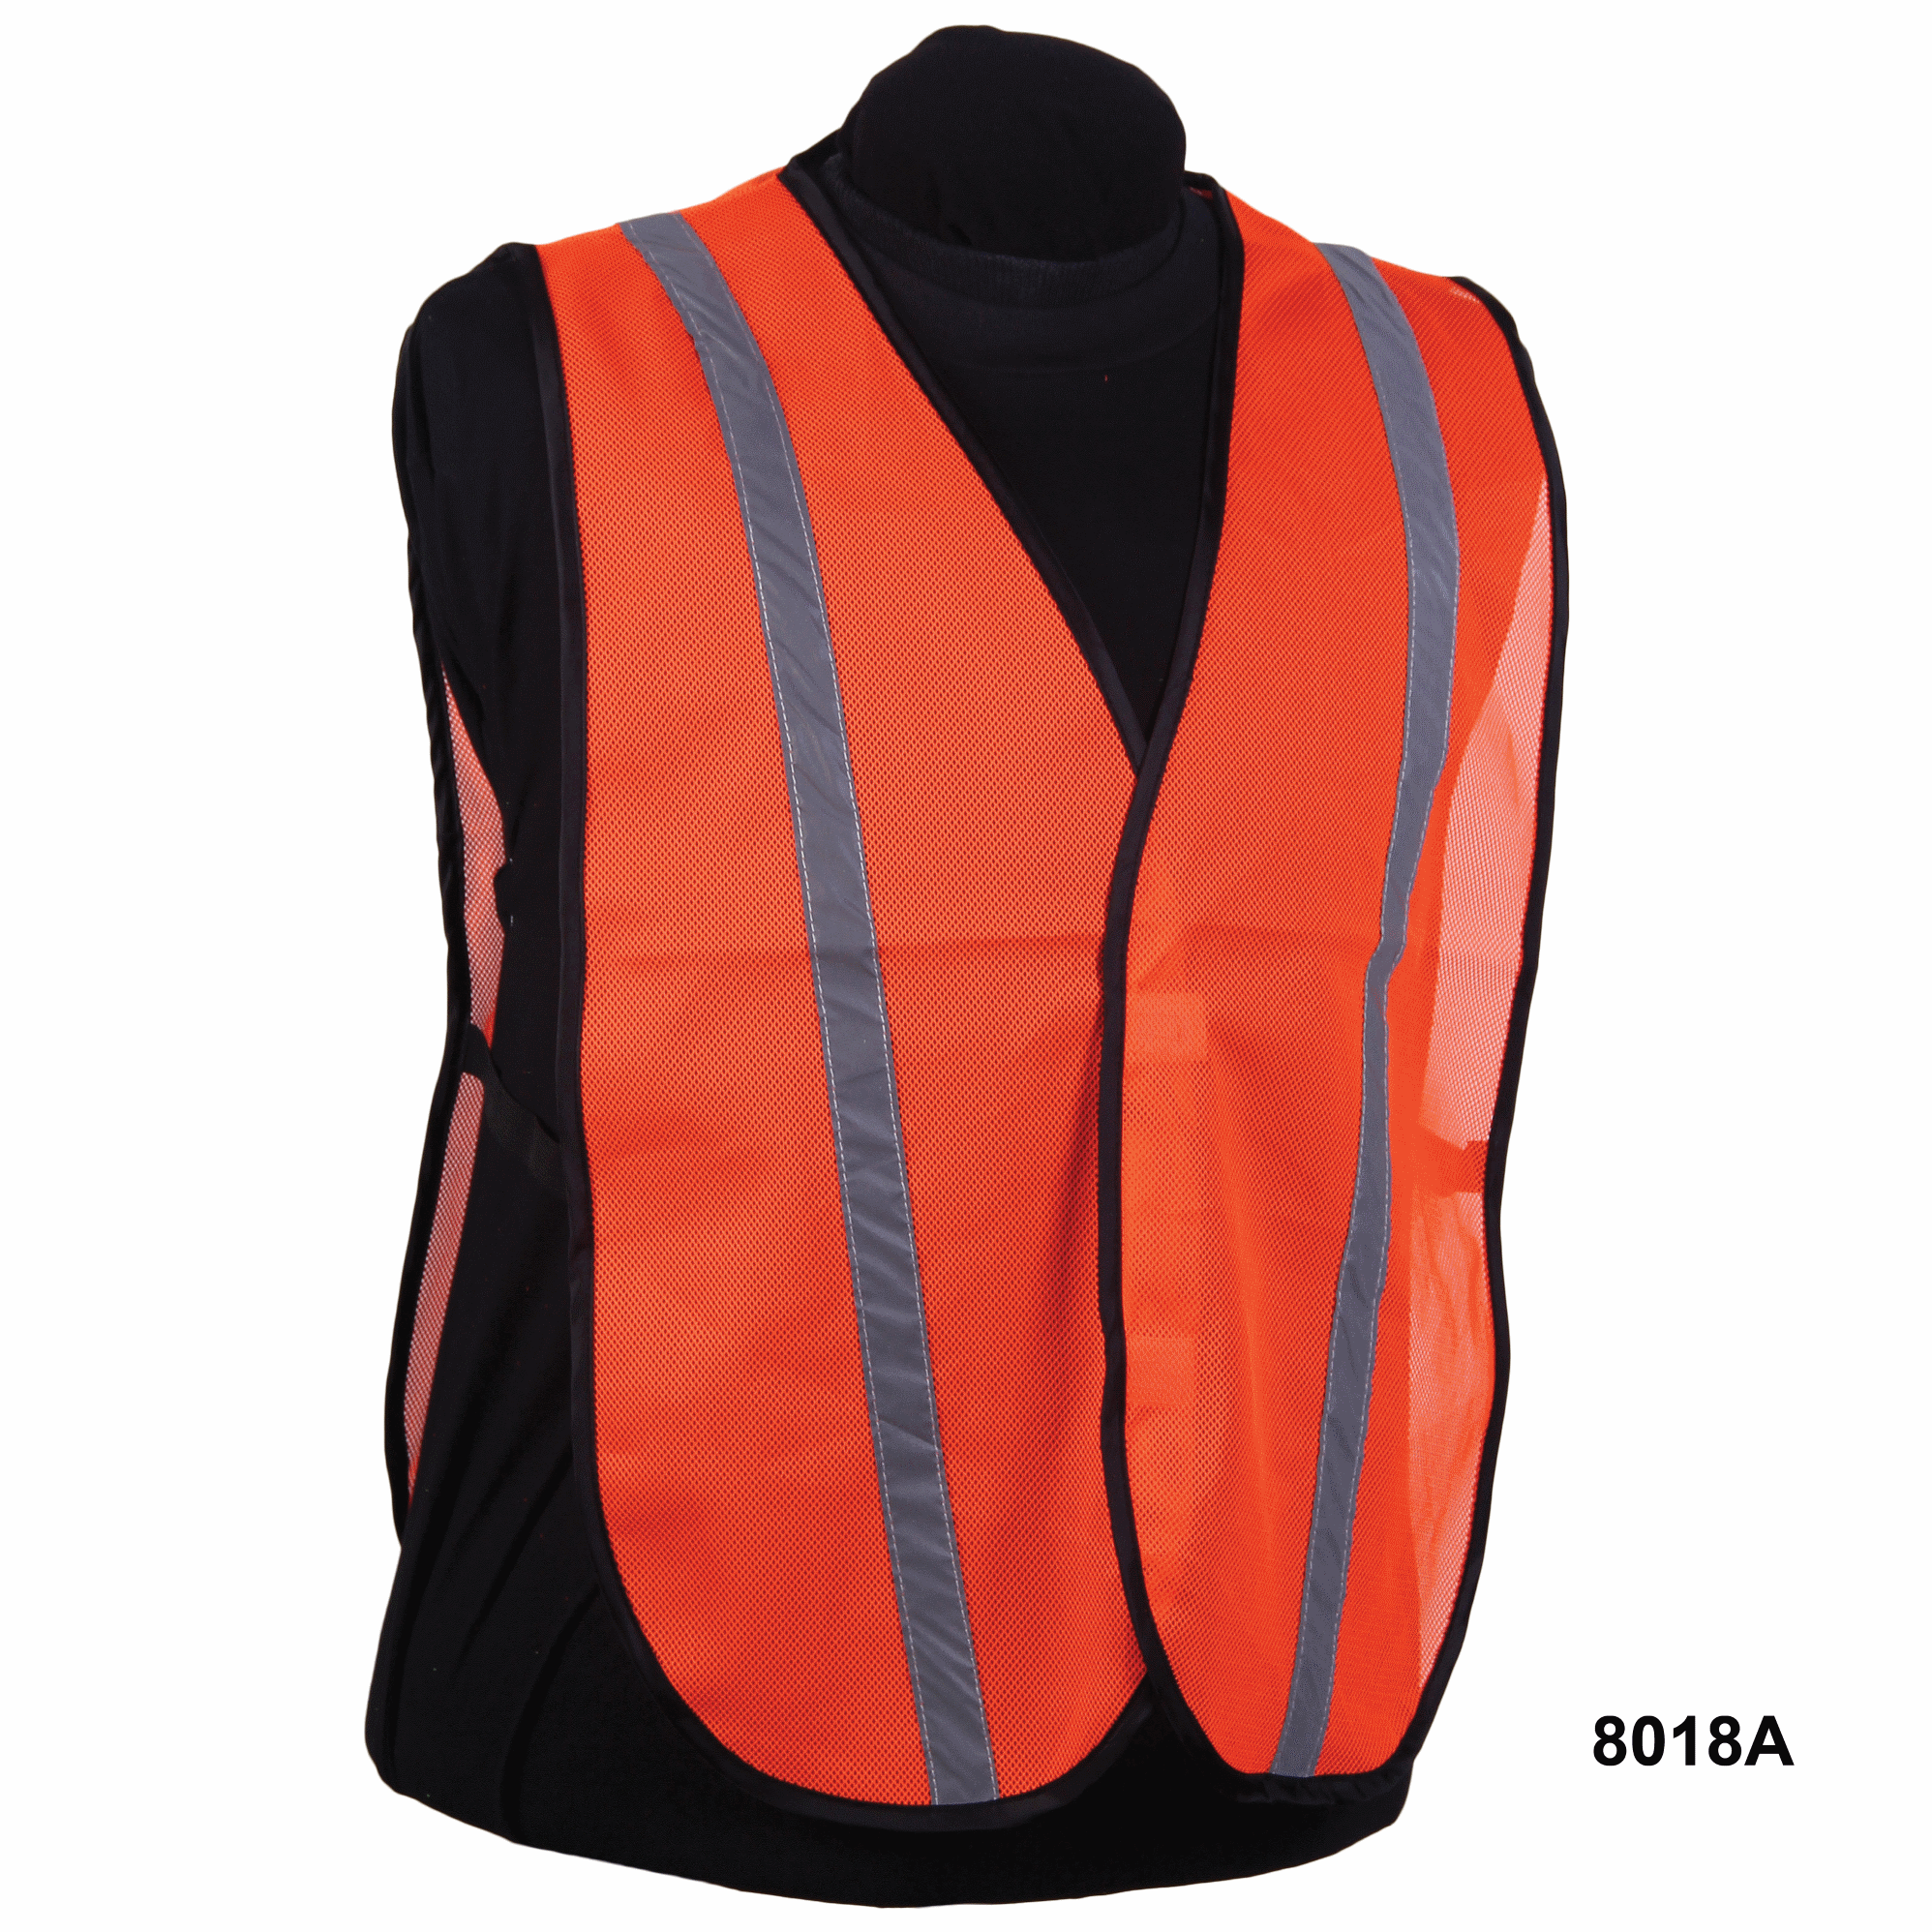 Nylon Orange Mesh Vest w/ Silver Stripe